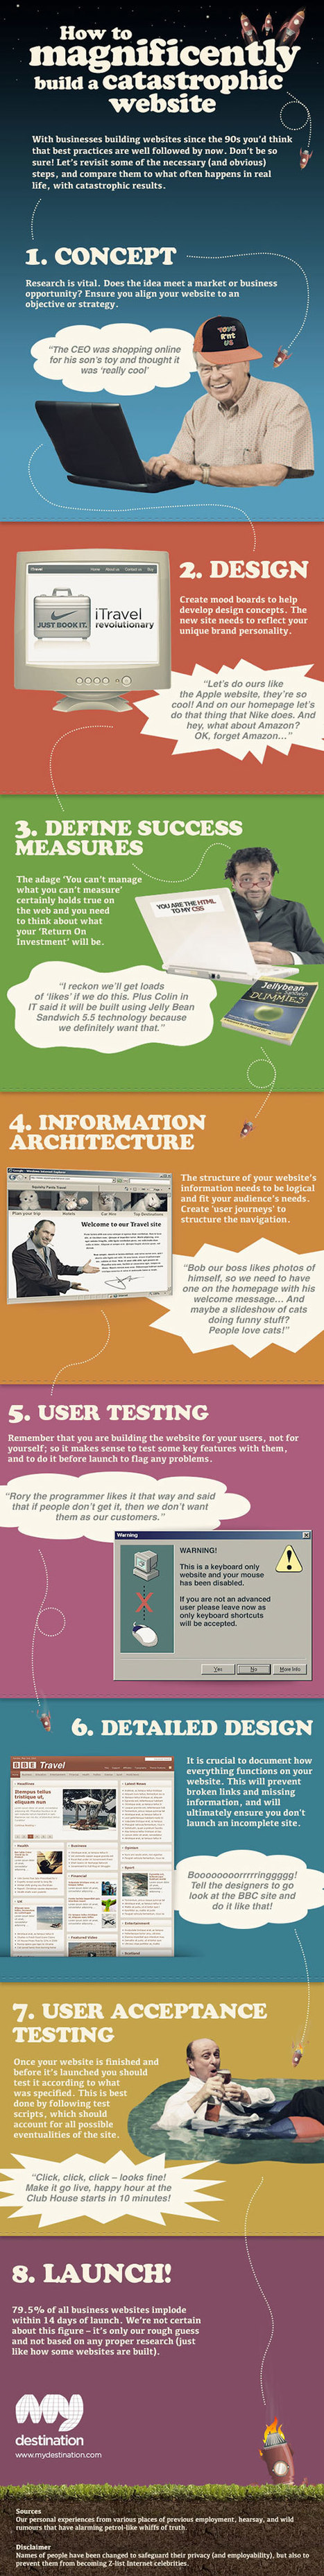 Step by Step Elements on How to Build a Catastrophic Website | All Infographics | All Infographics | Scoop.it